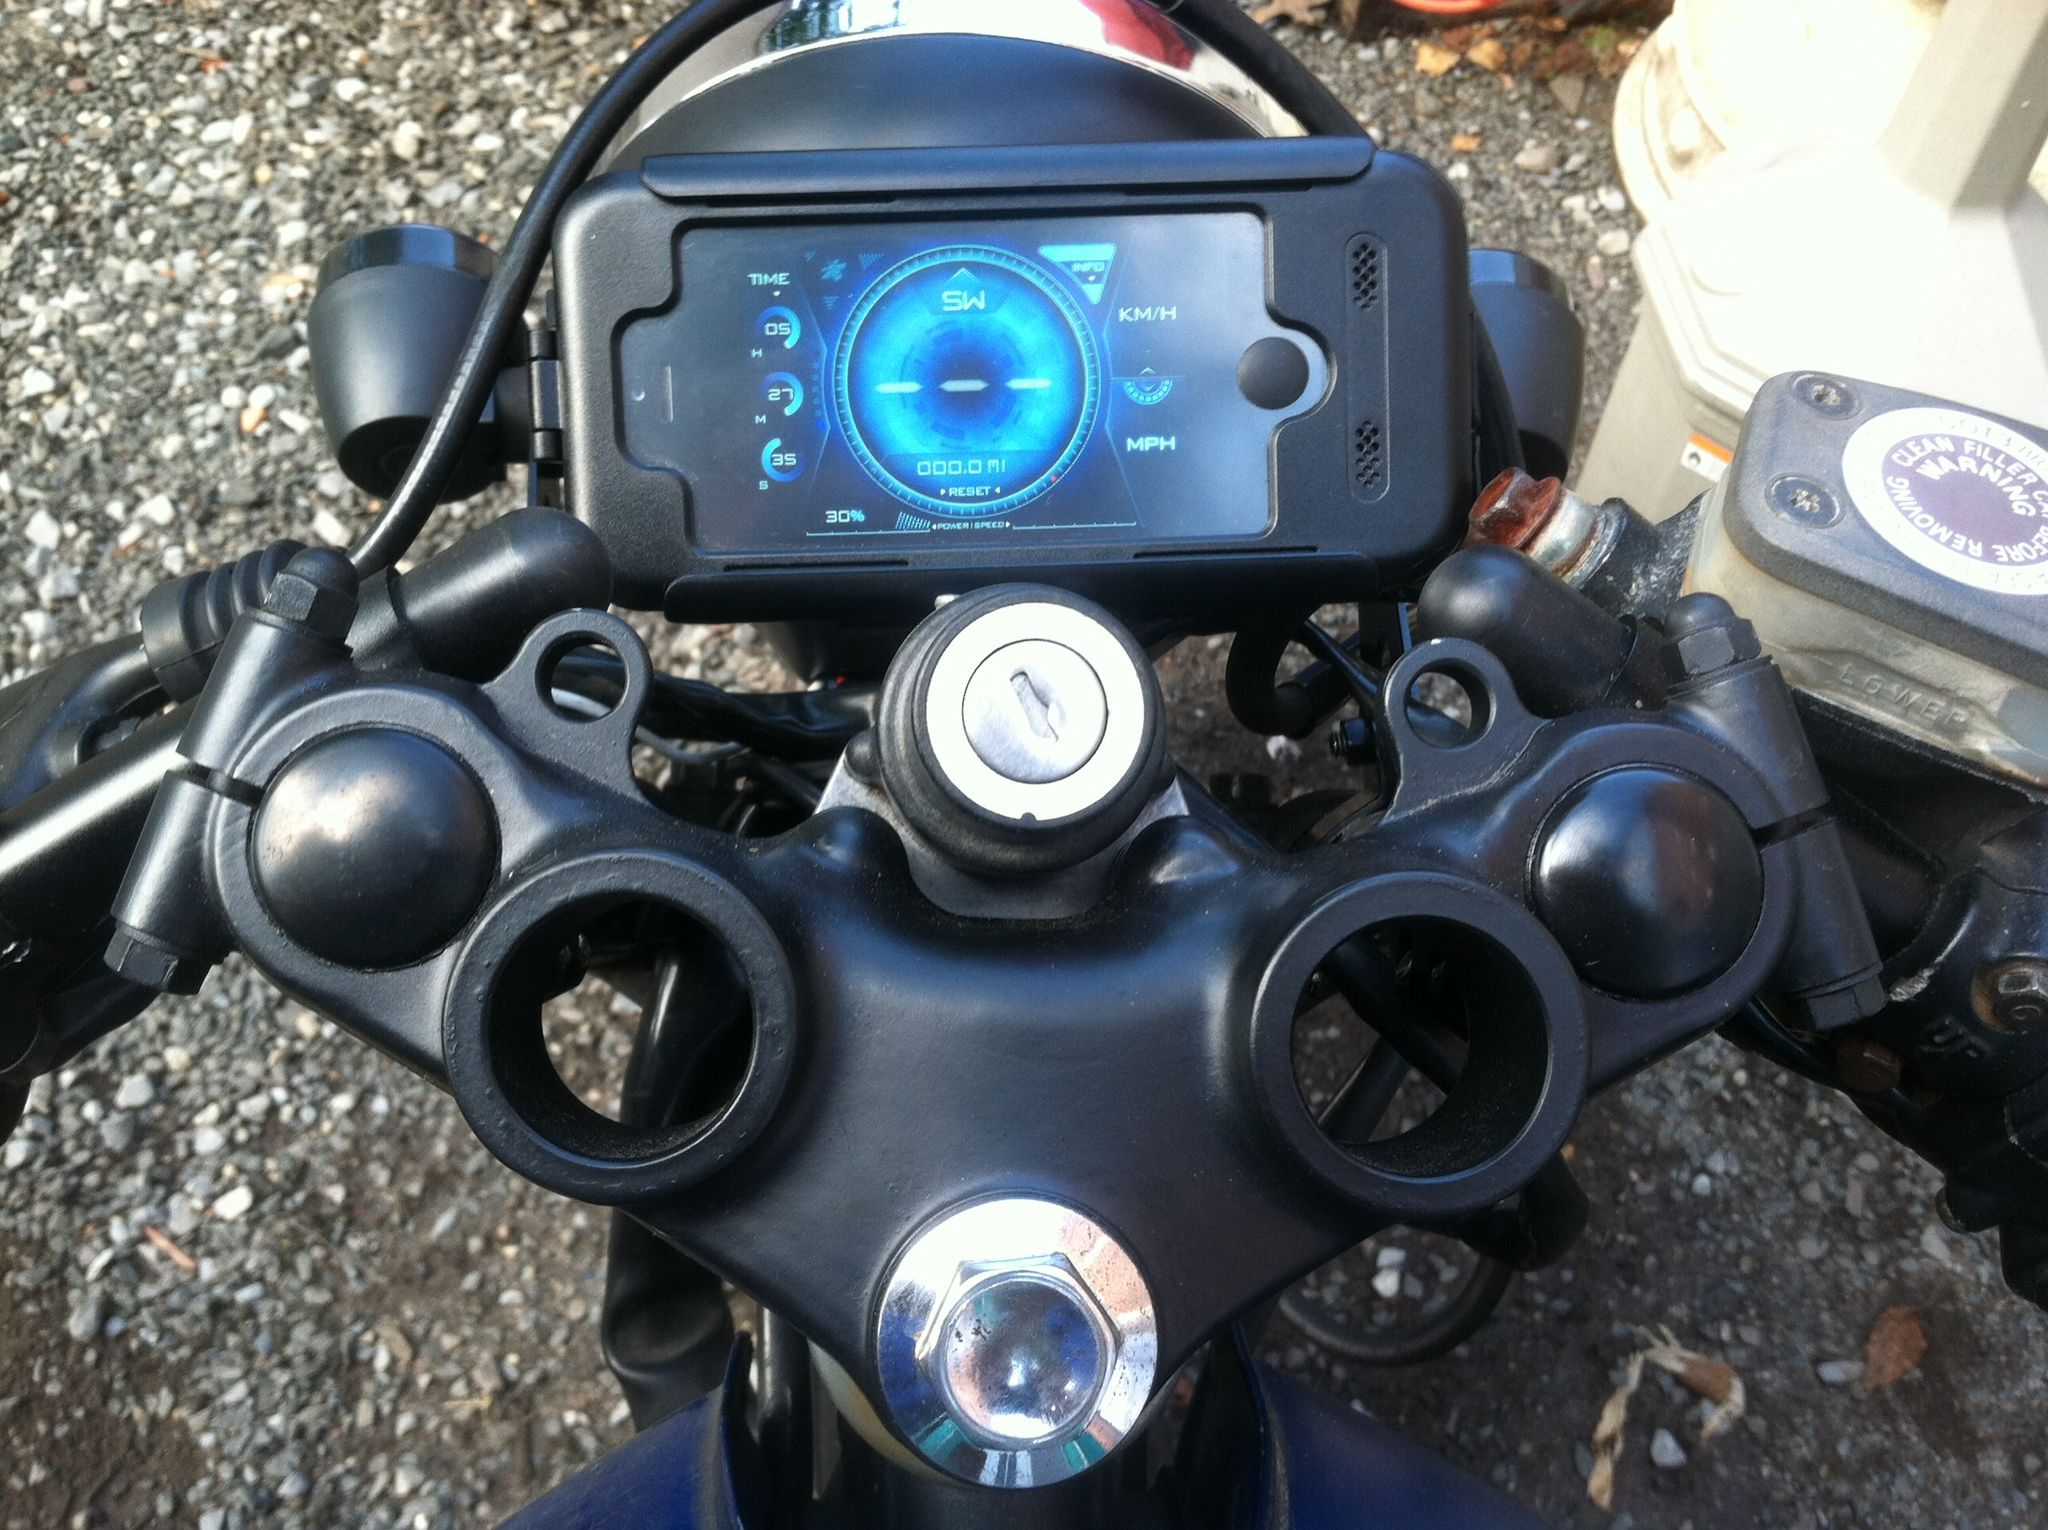 Yamaha xs400 Cafe racer  Upgraded speedometer to iPhone 5  Gets rid